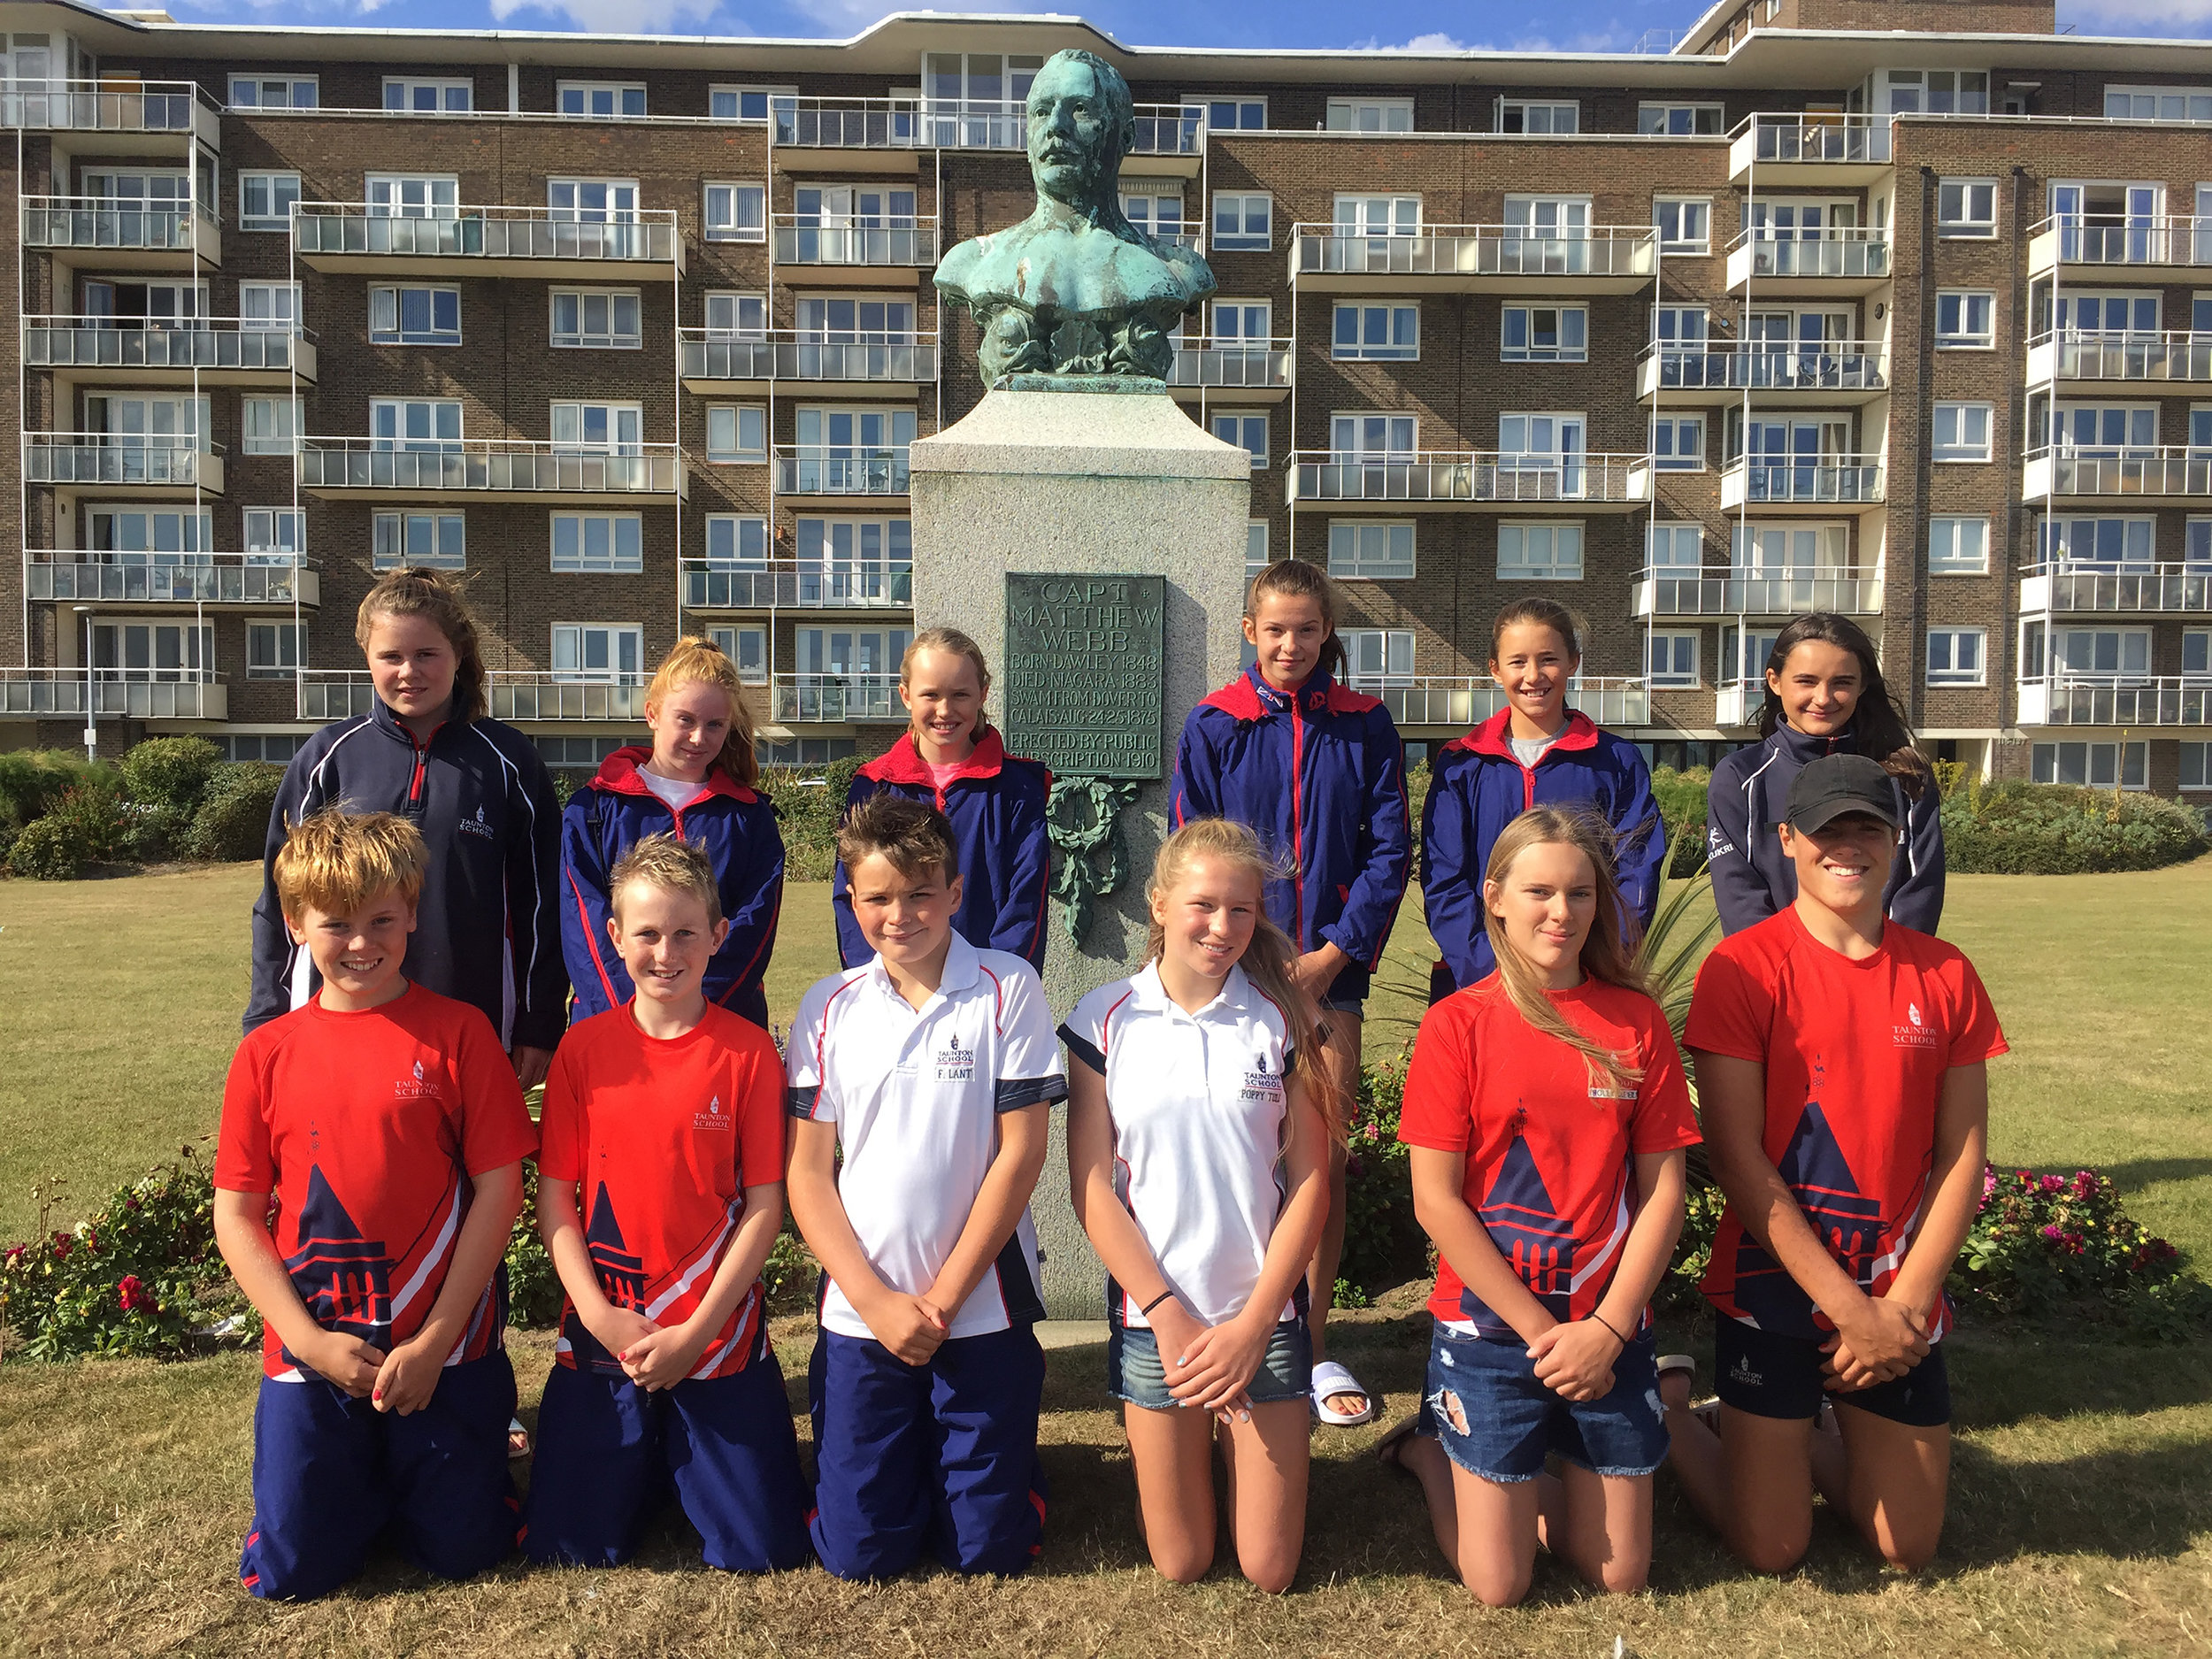 Taunton School Swimmers in front of statue of William Webb, first man to swim the Channel